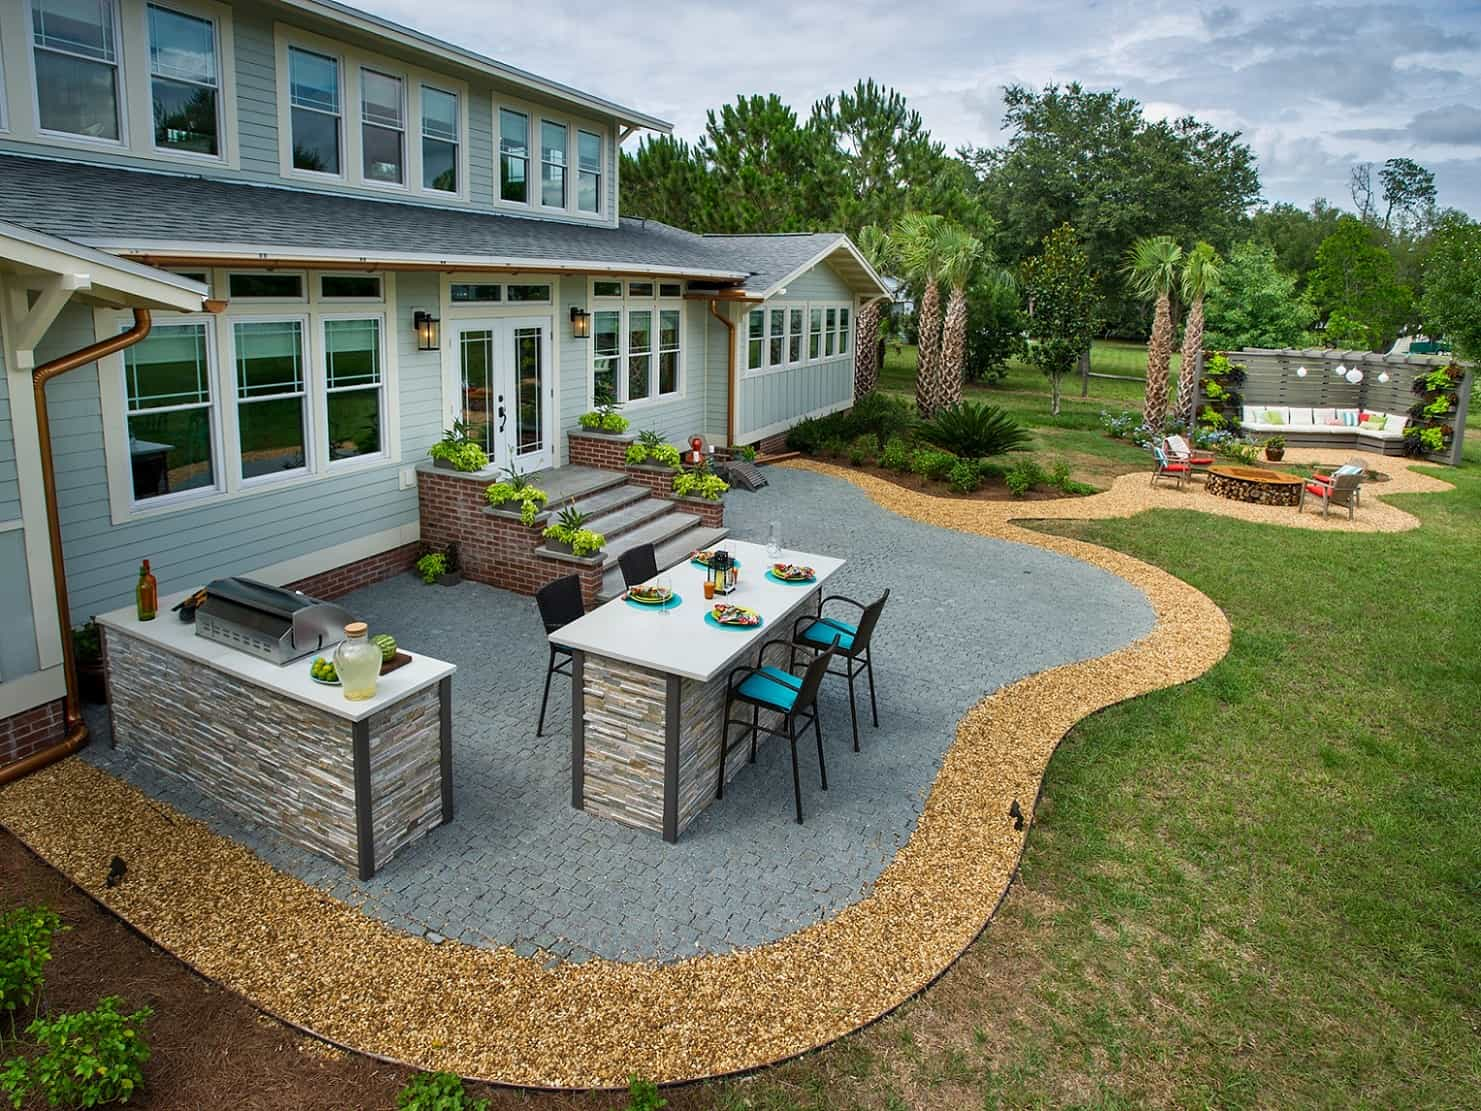 Fabulous Patios Designs That Will Leave You Speechless ... on Small Brick Patio Ideas id=44878